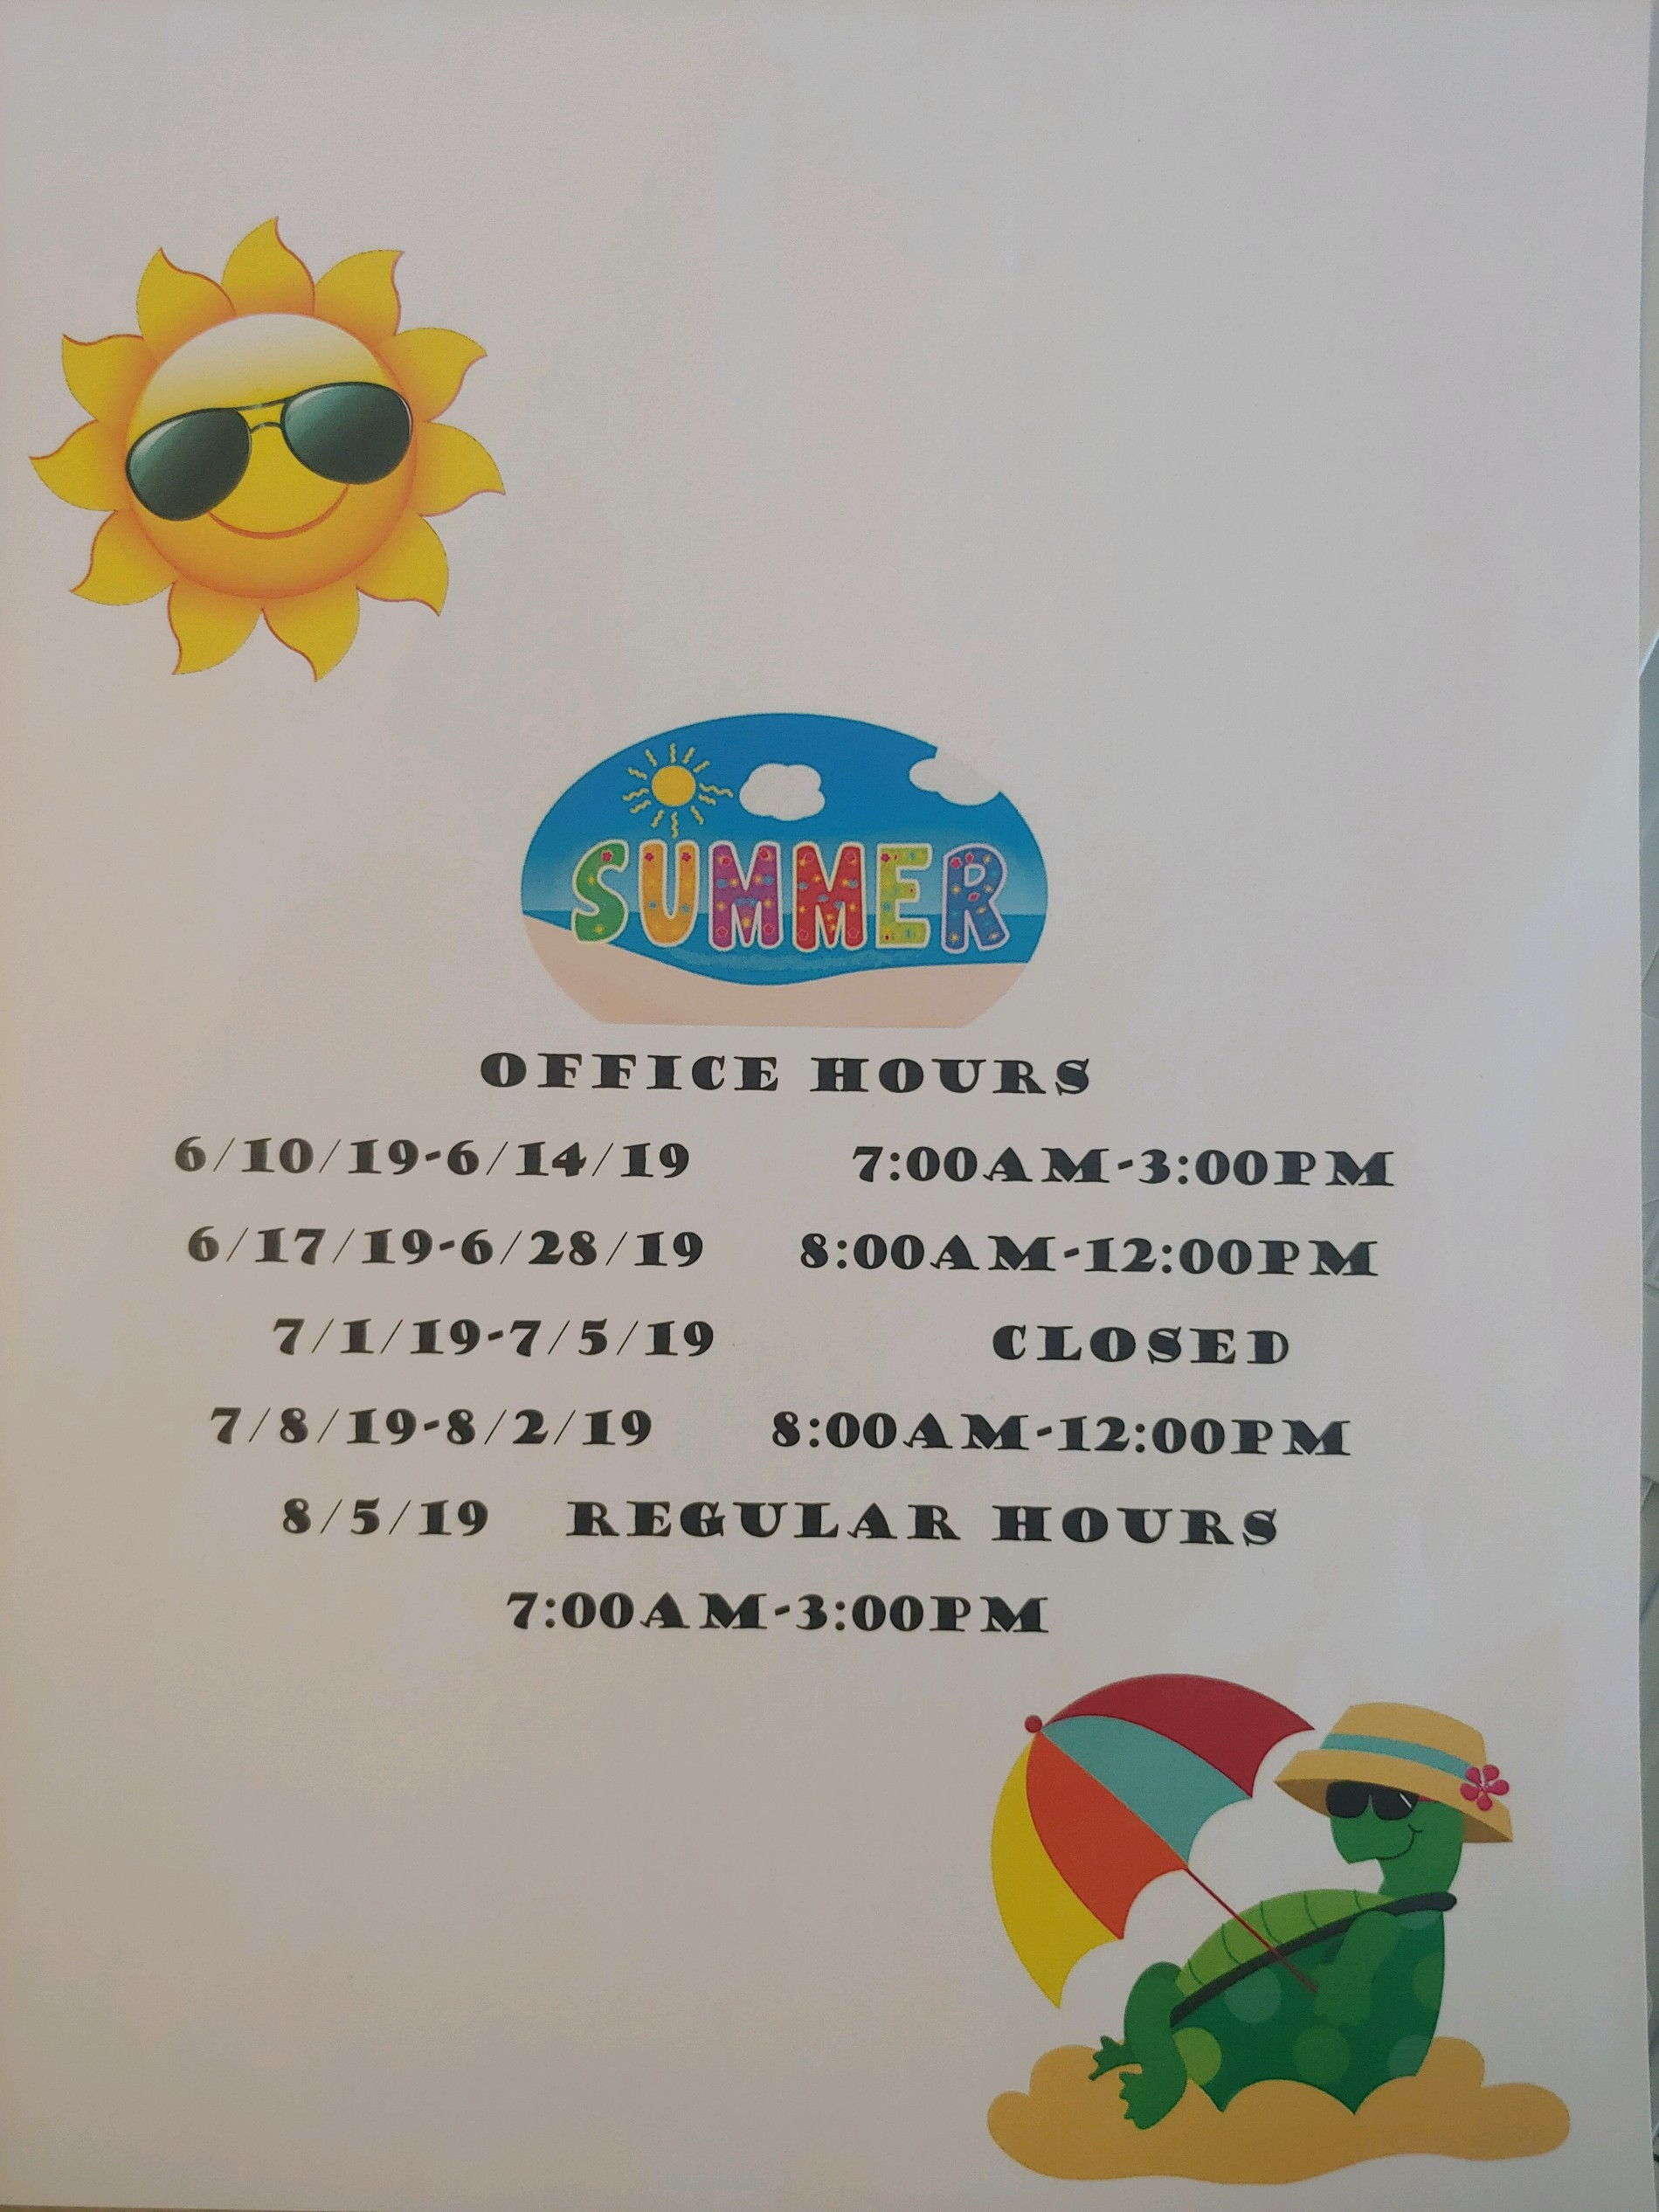 Hug High School summer office hours 2019